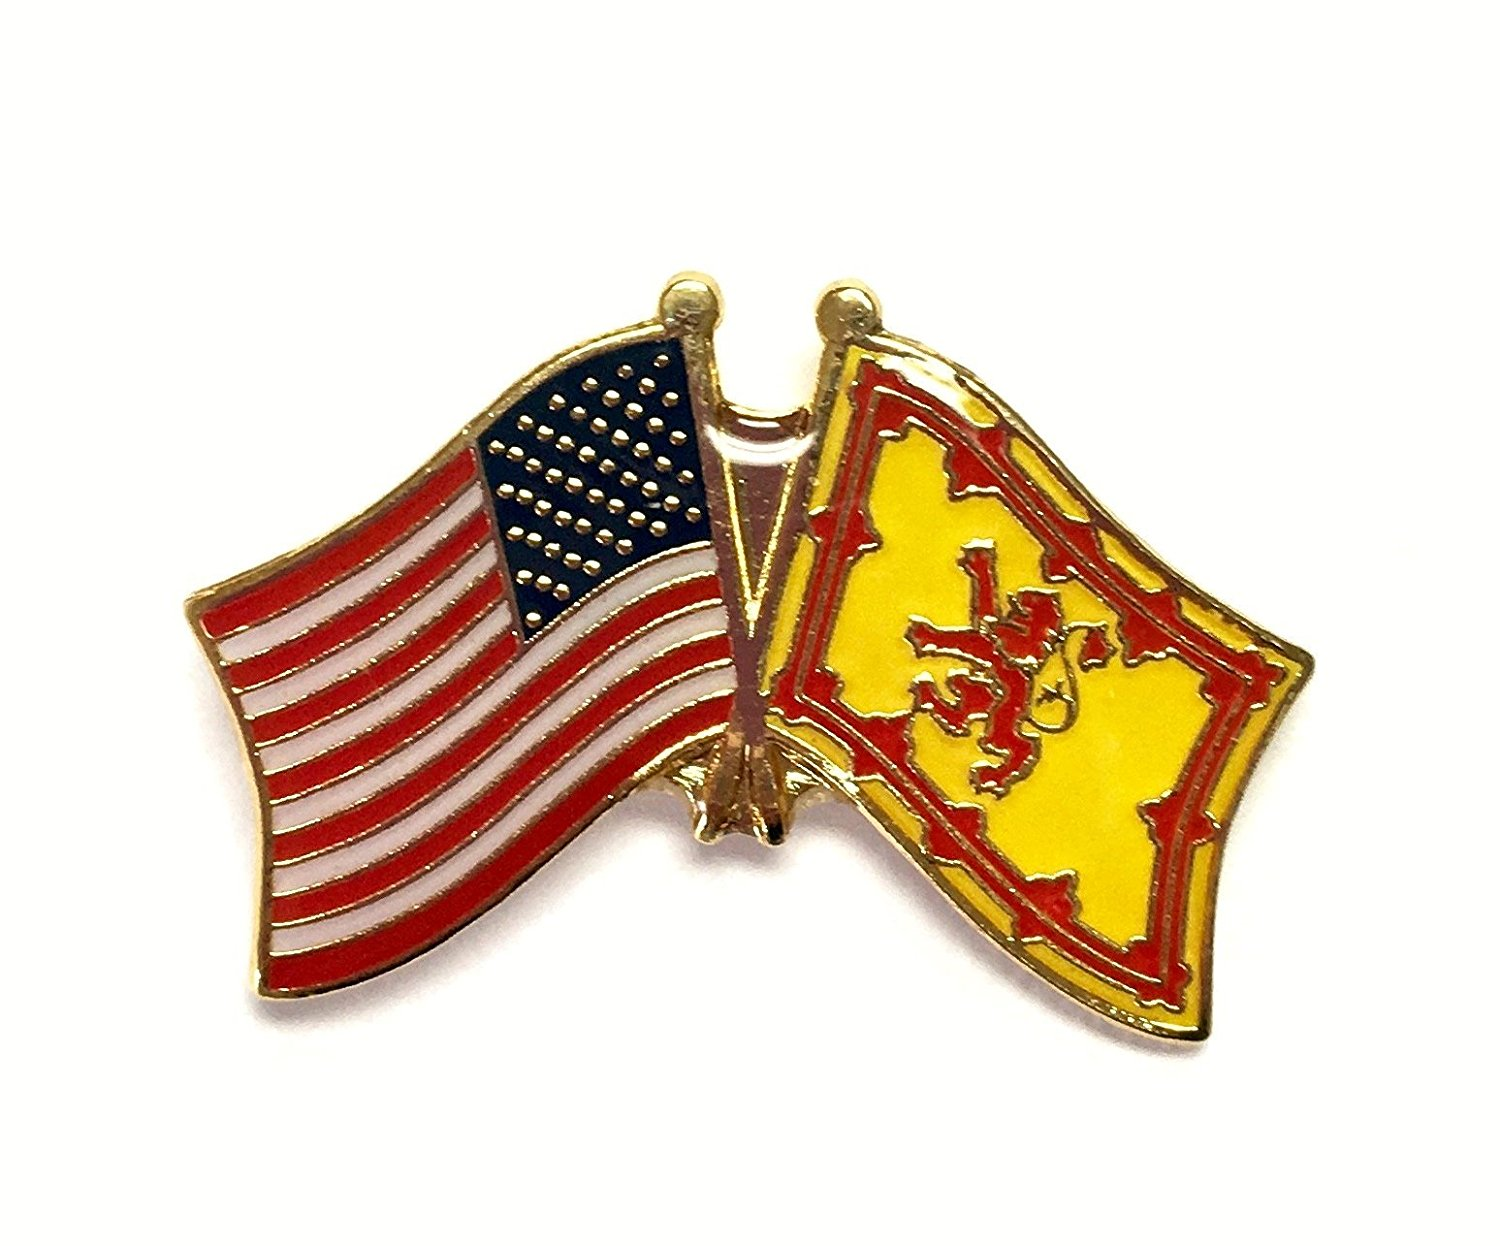 PACK of 3 Scotland Lion & US Crossed Double Flag Lapel Pins, Scottish Lion & American Friendship Pin Badge